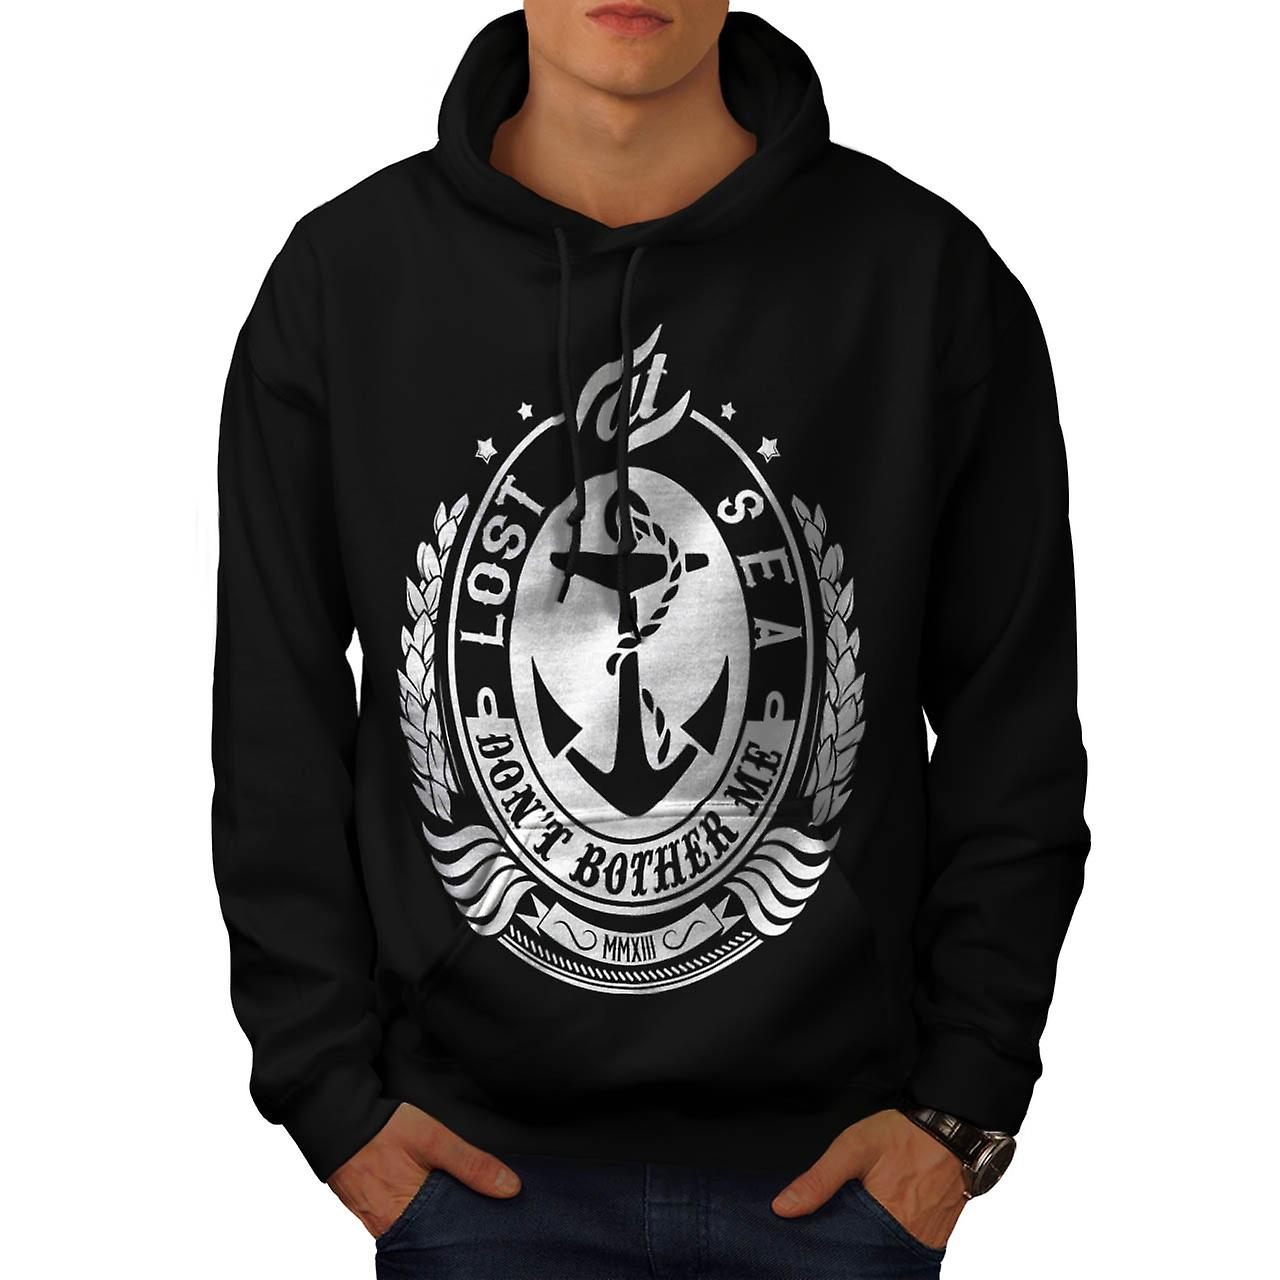 Lost At Sea Boat Ship Bother Me Men Black Hoodie | Wellcoda